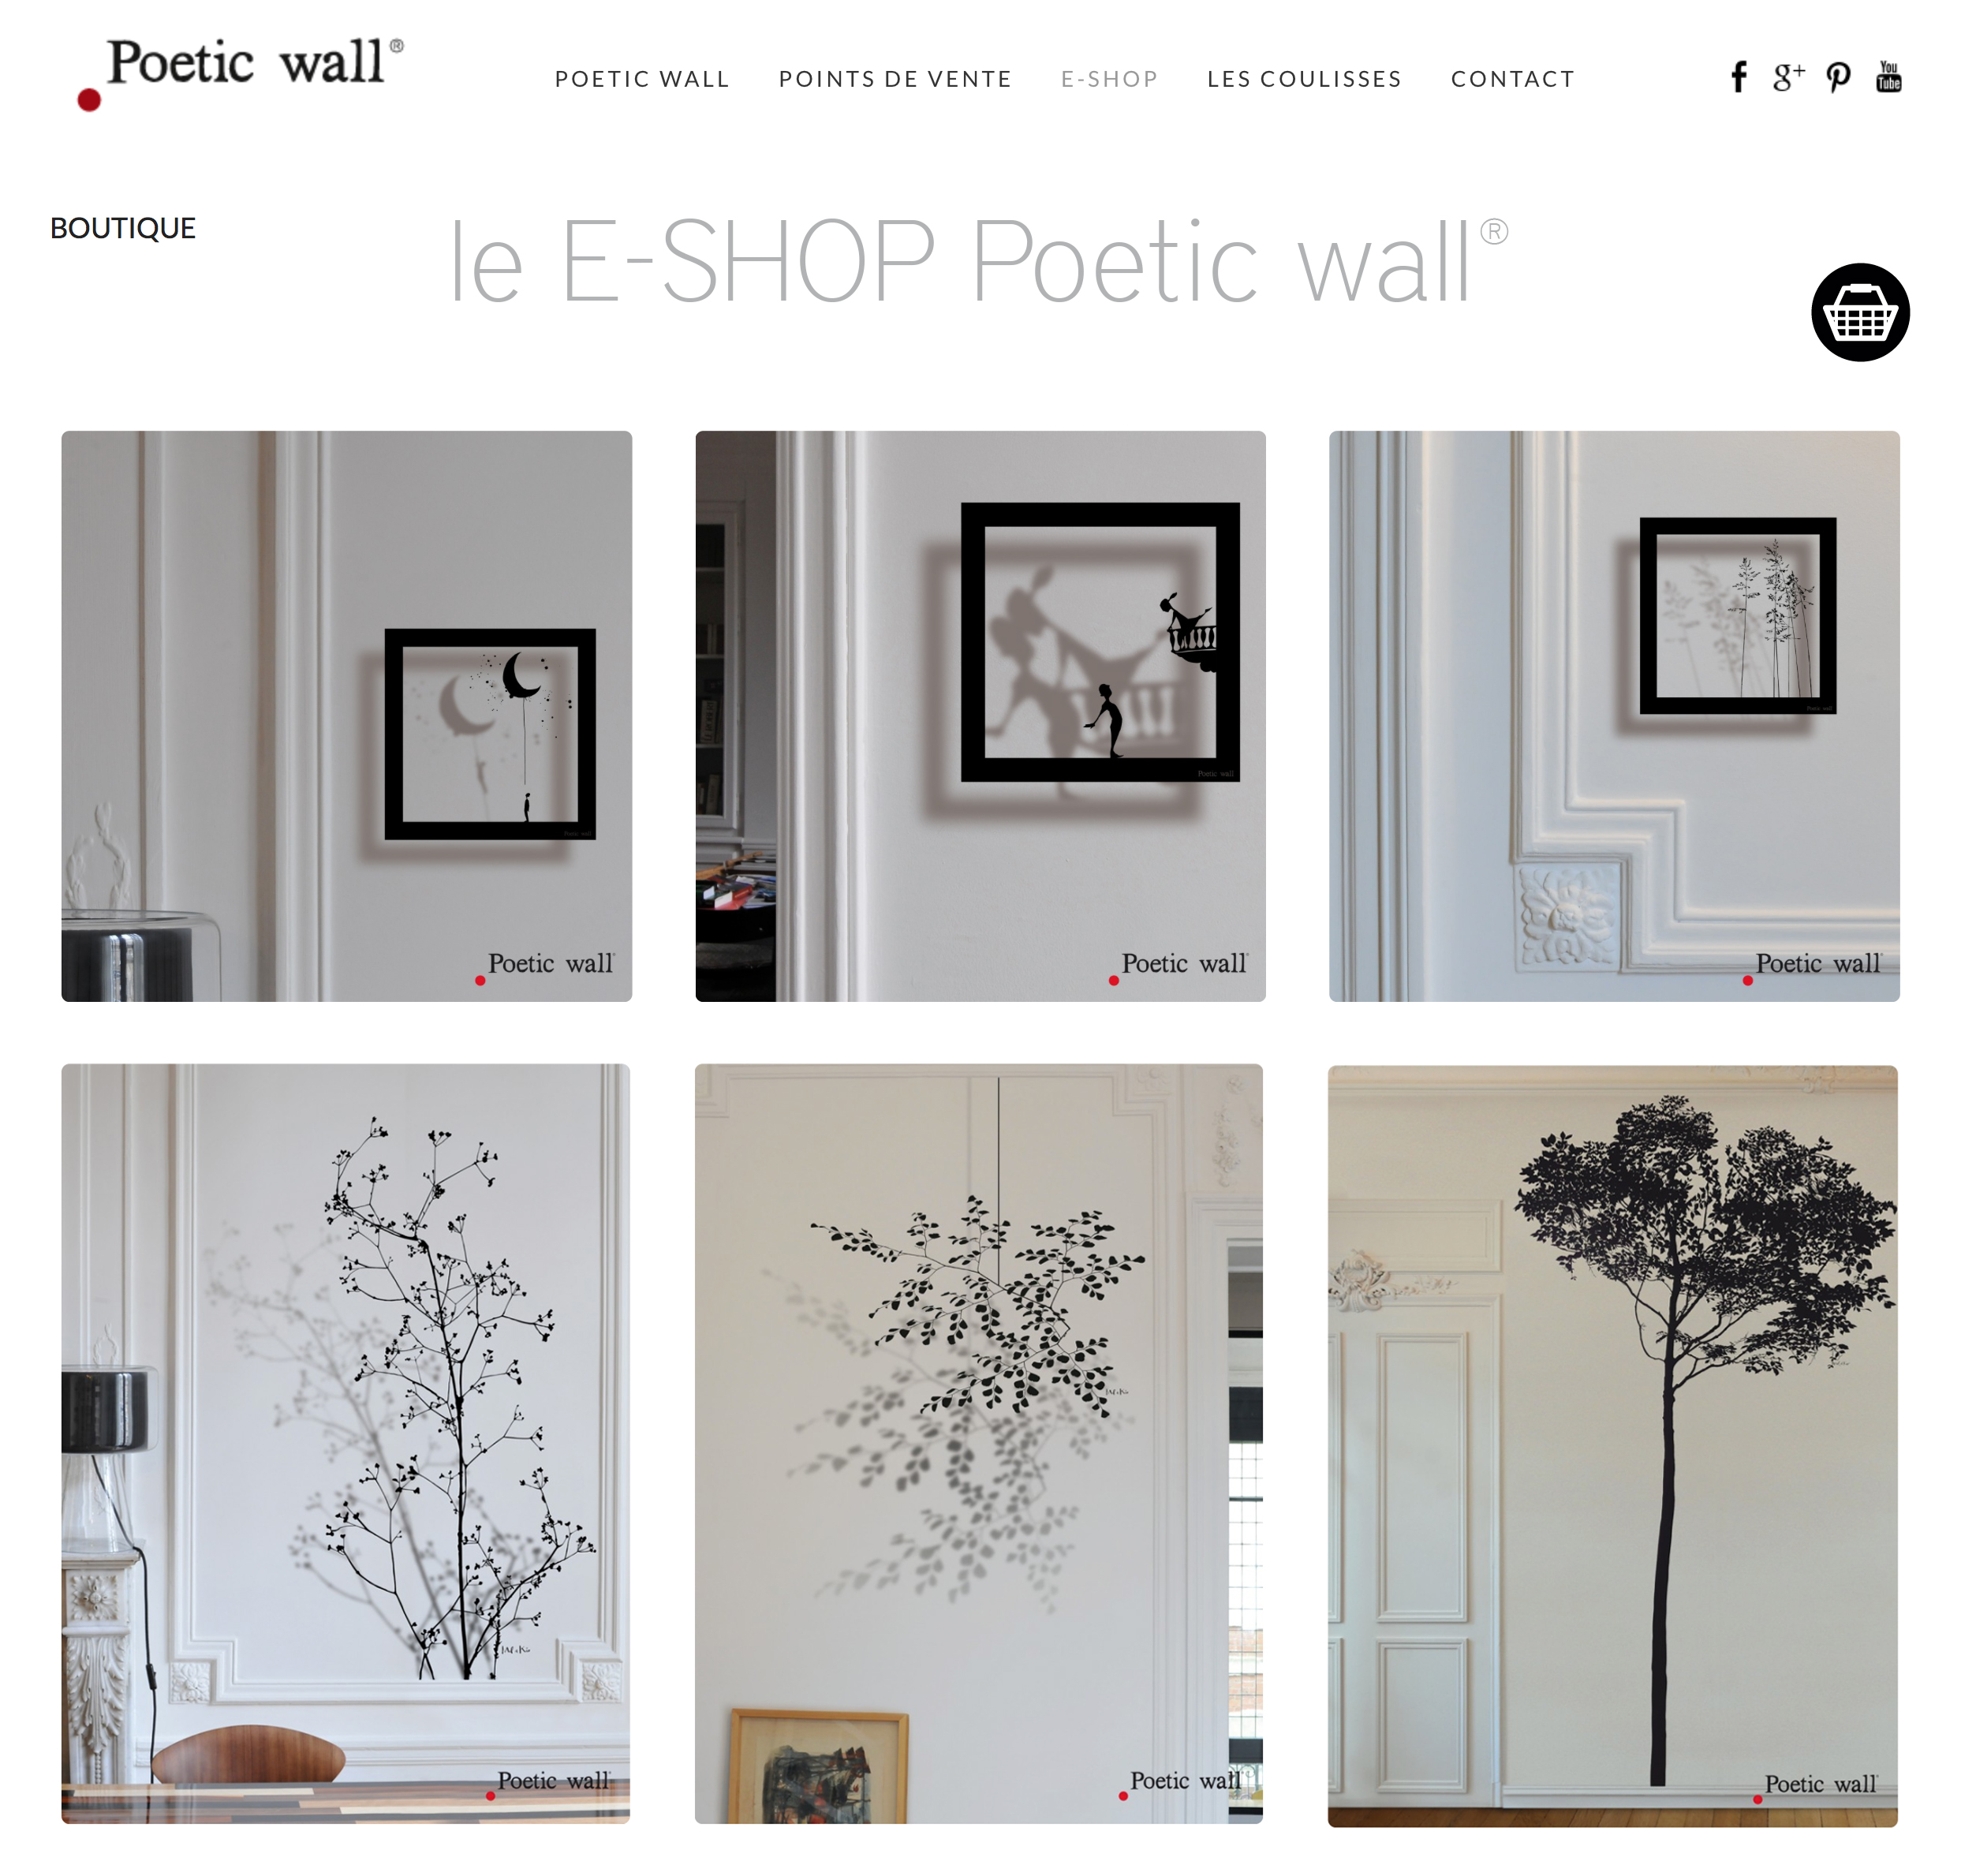 le E-SHOP poetic wall propose une sélection de stickers en vente directe